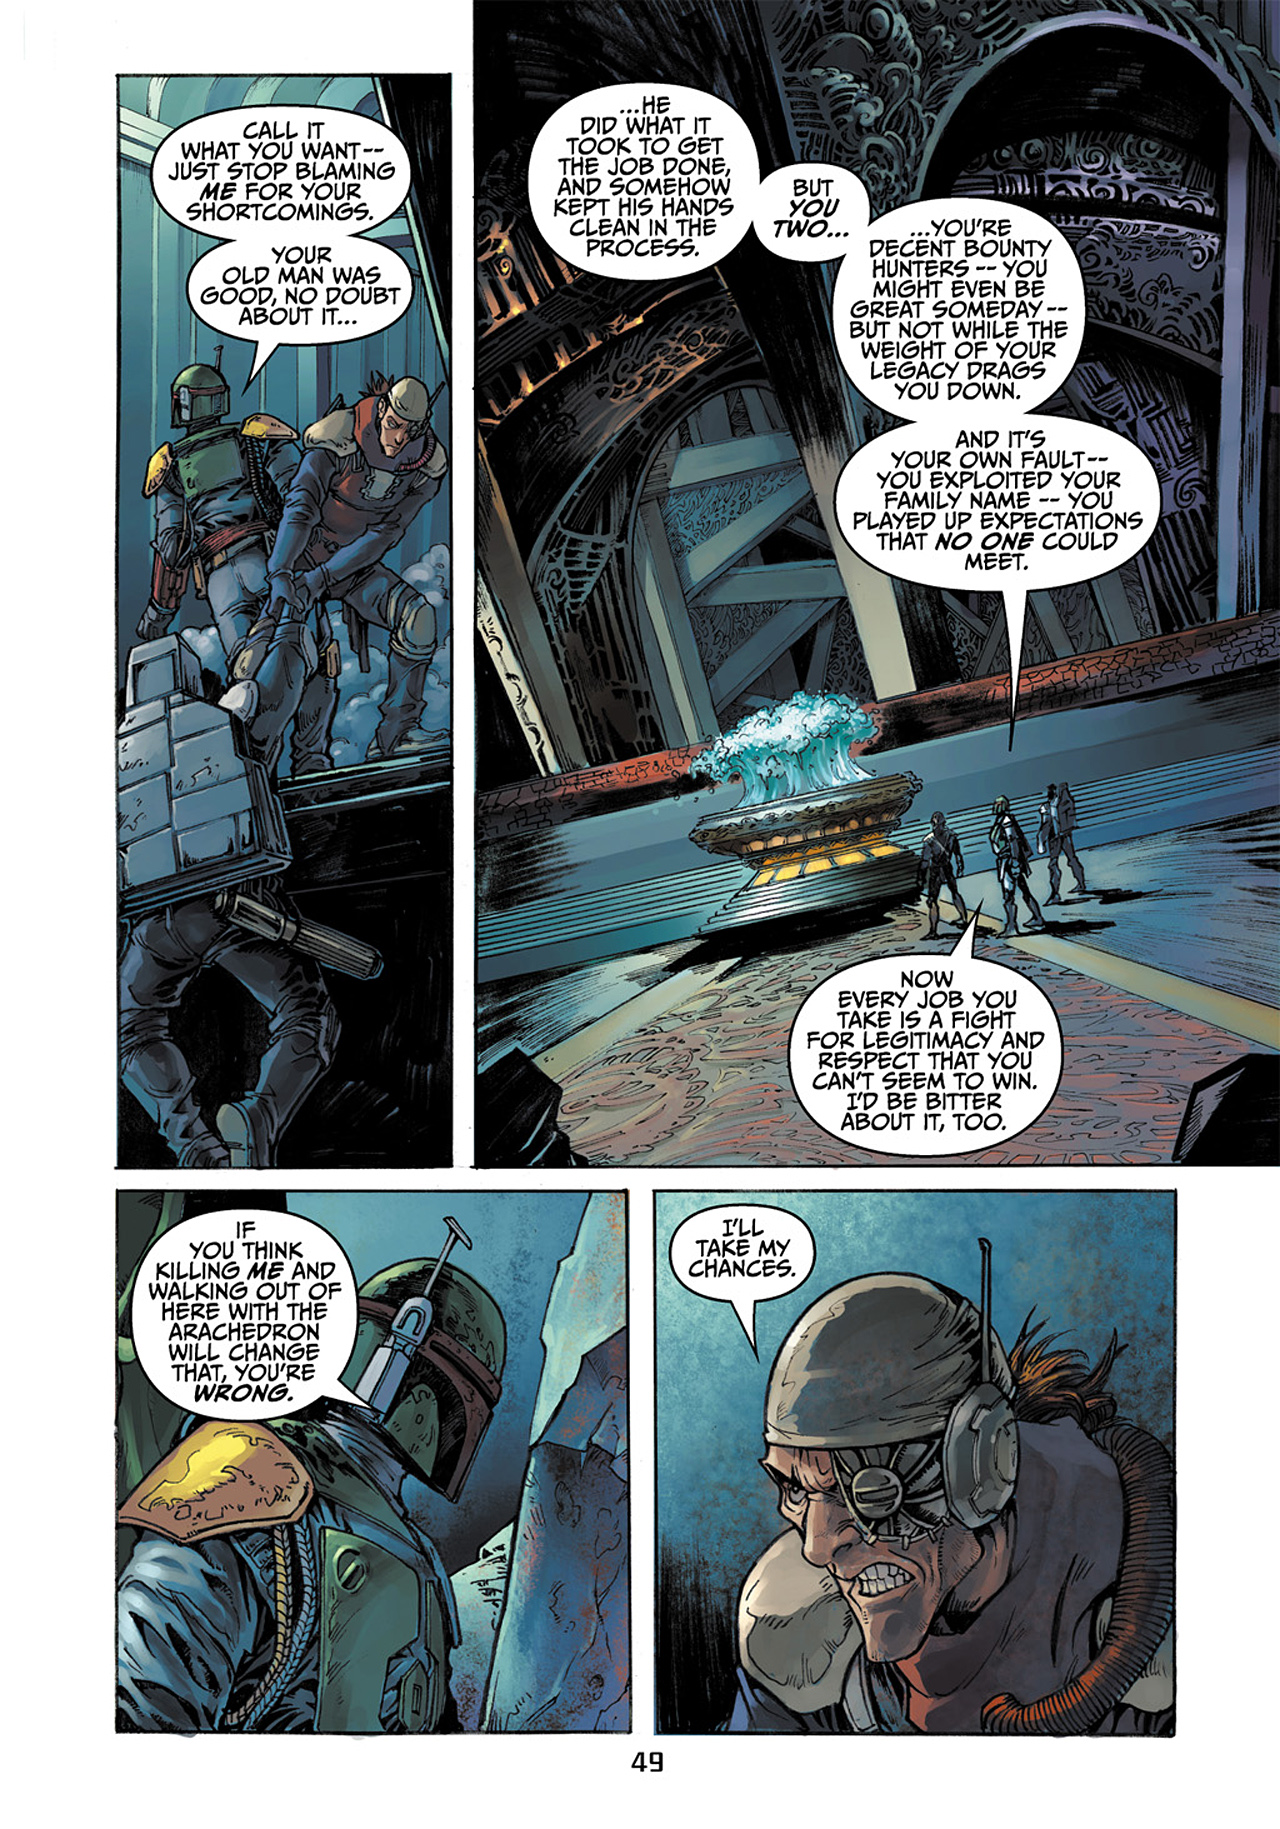 Read online Star Wars Adventures comic -  Issue # Issue Boba Fett and the Ship of Fear - 50